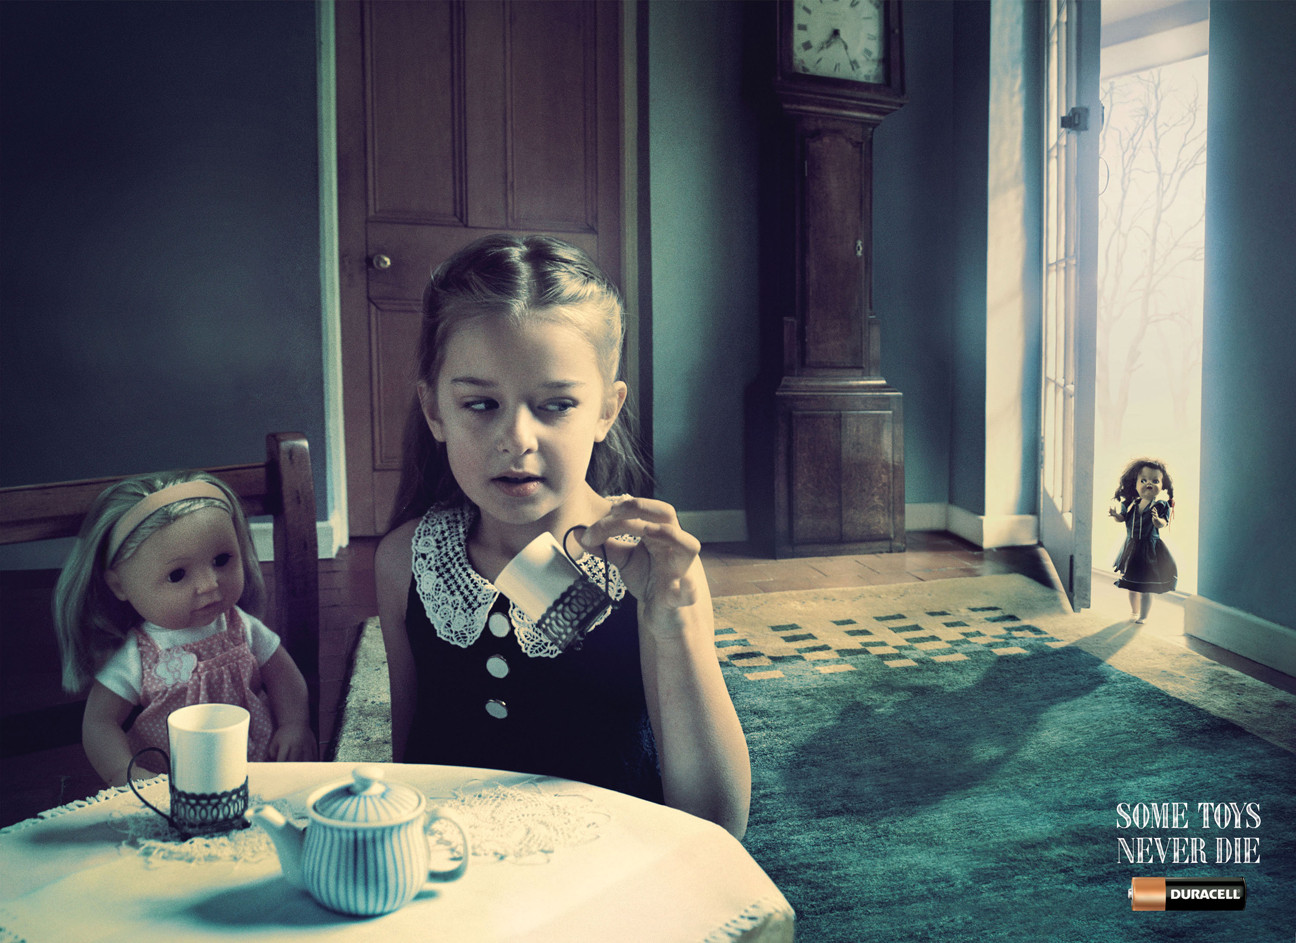 Duracell campaign. Winner of bronze at the Cannes Young Lions Awards for Best Photography.